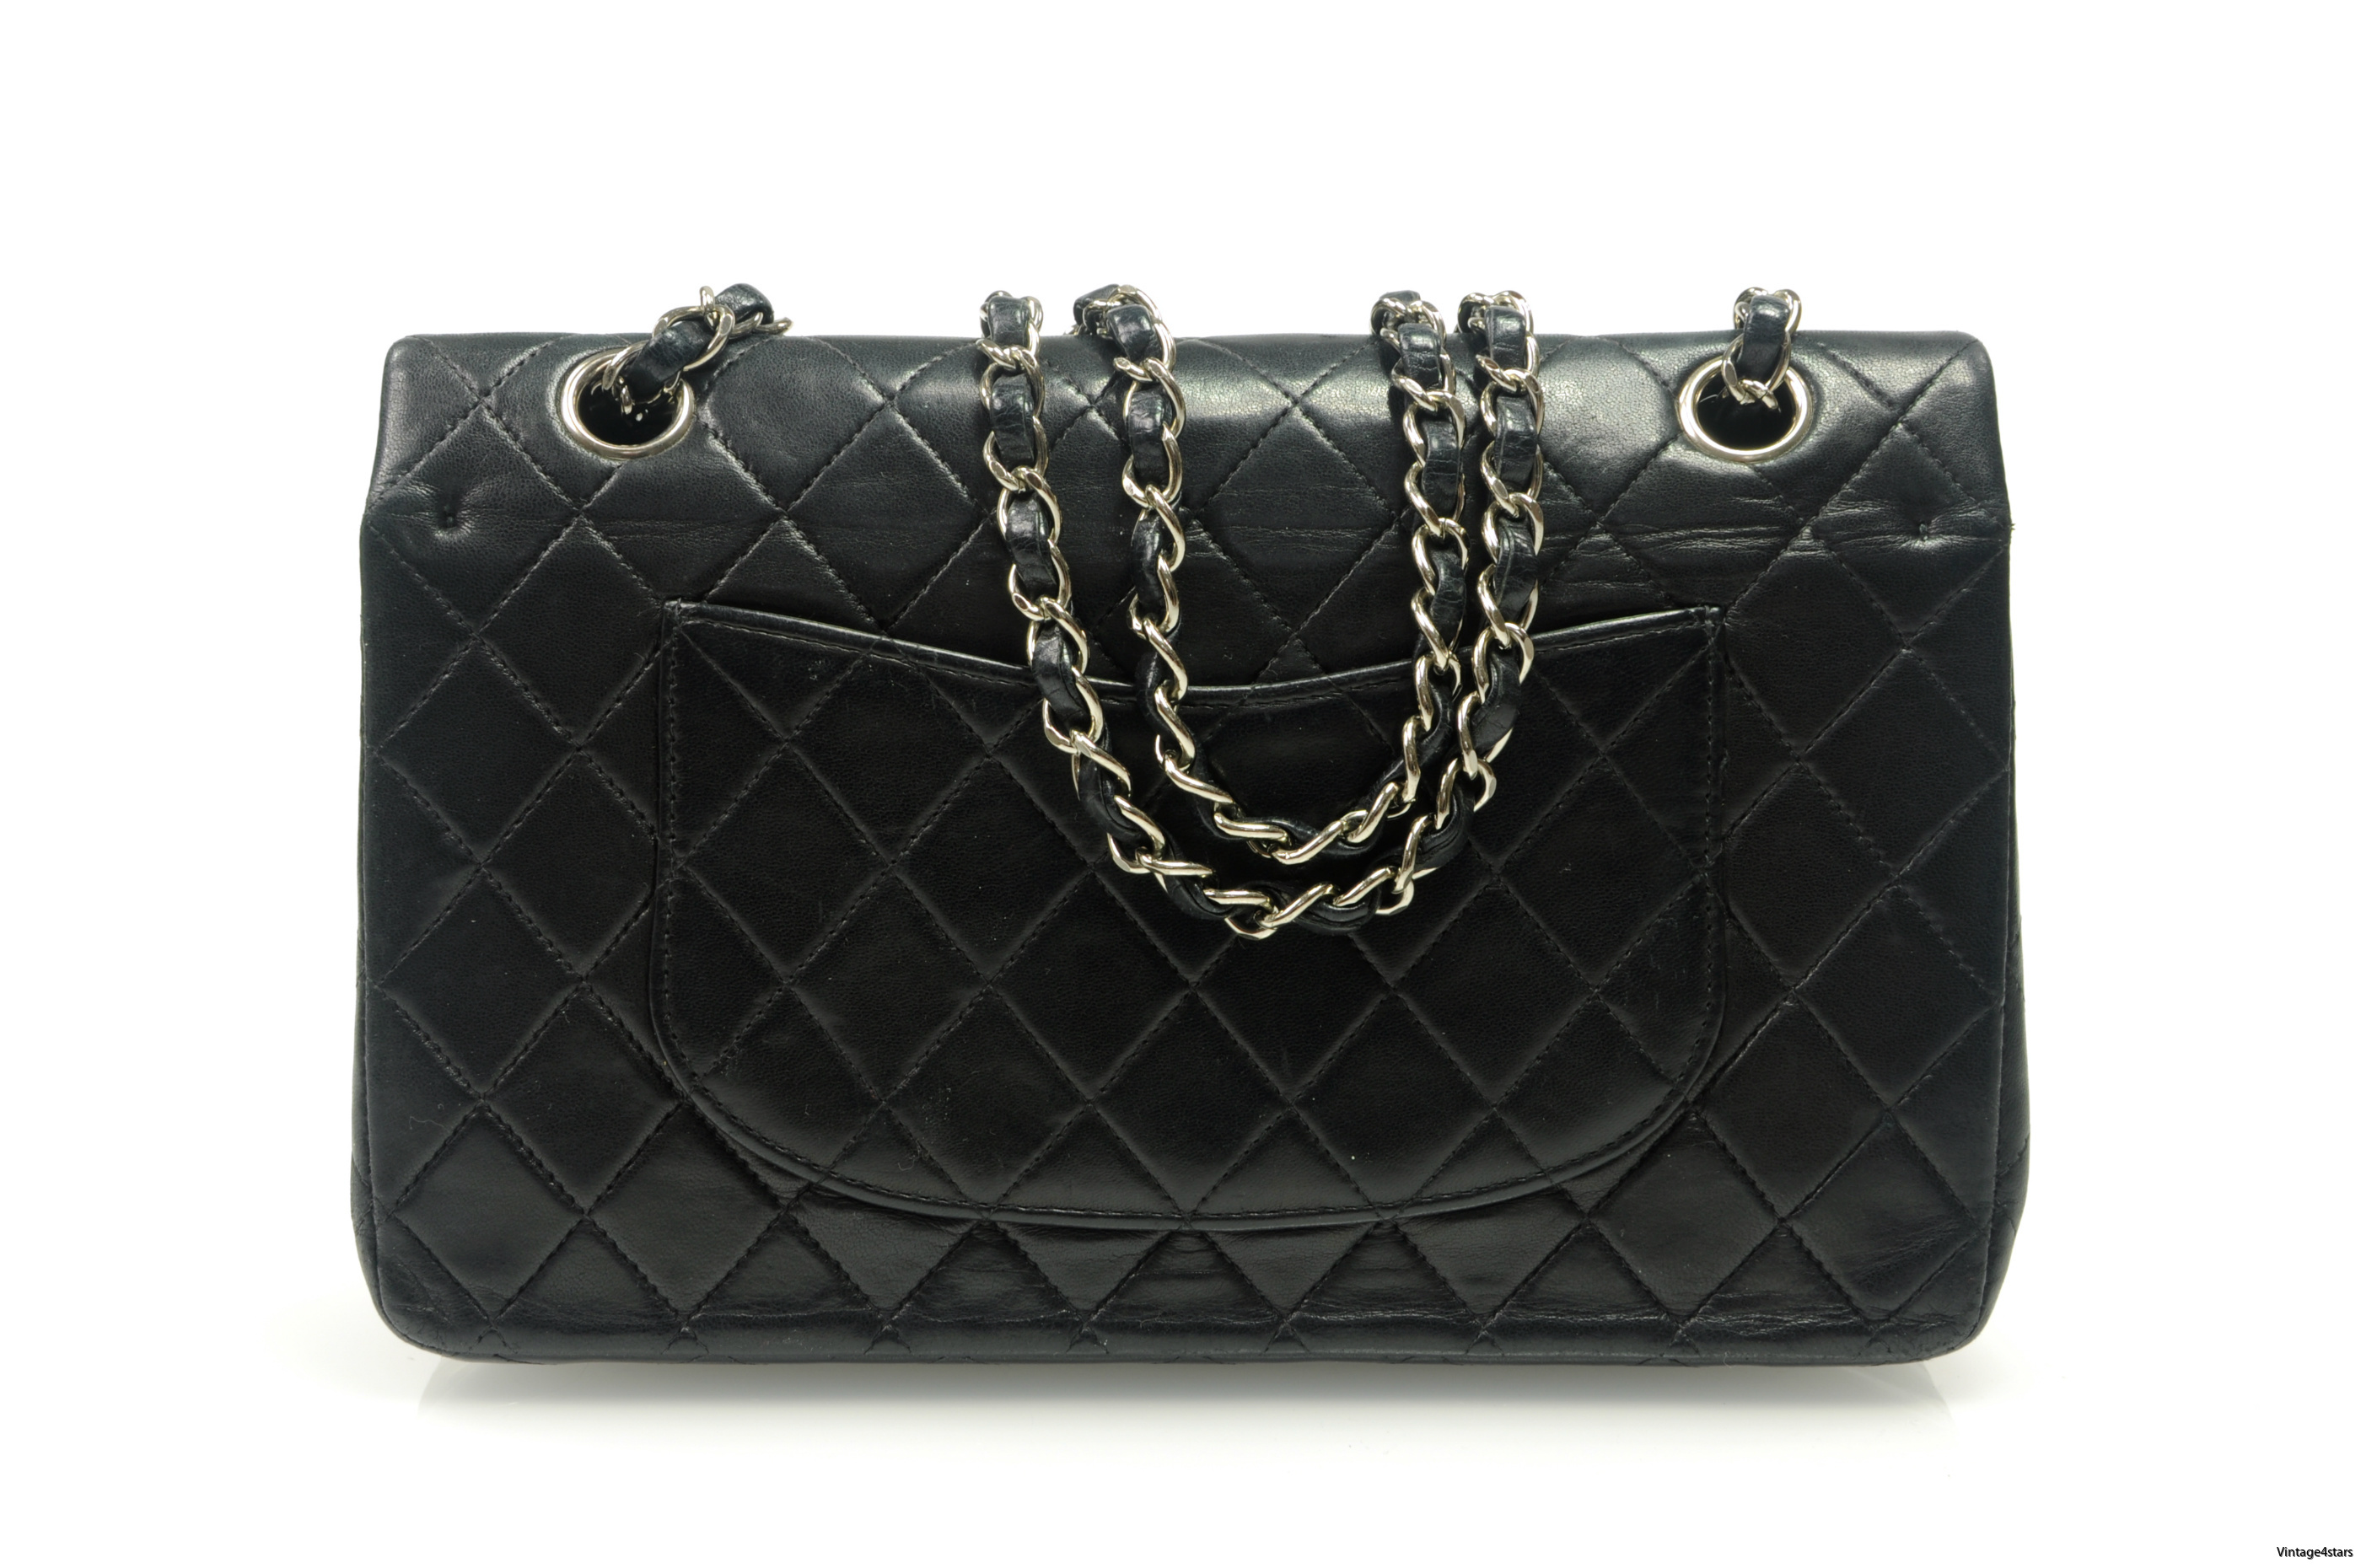 CHANEL Double Flap SHW 9